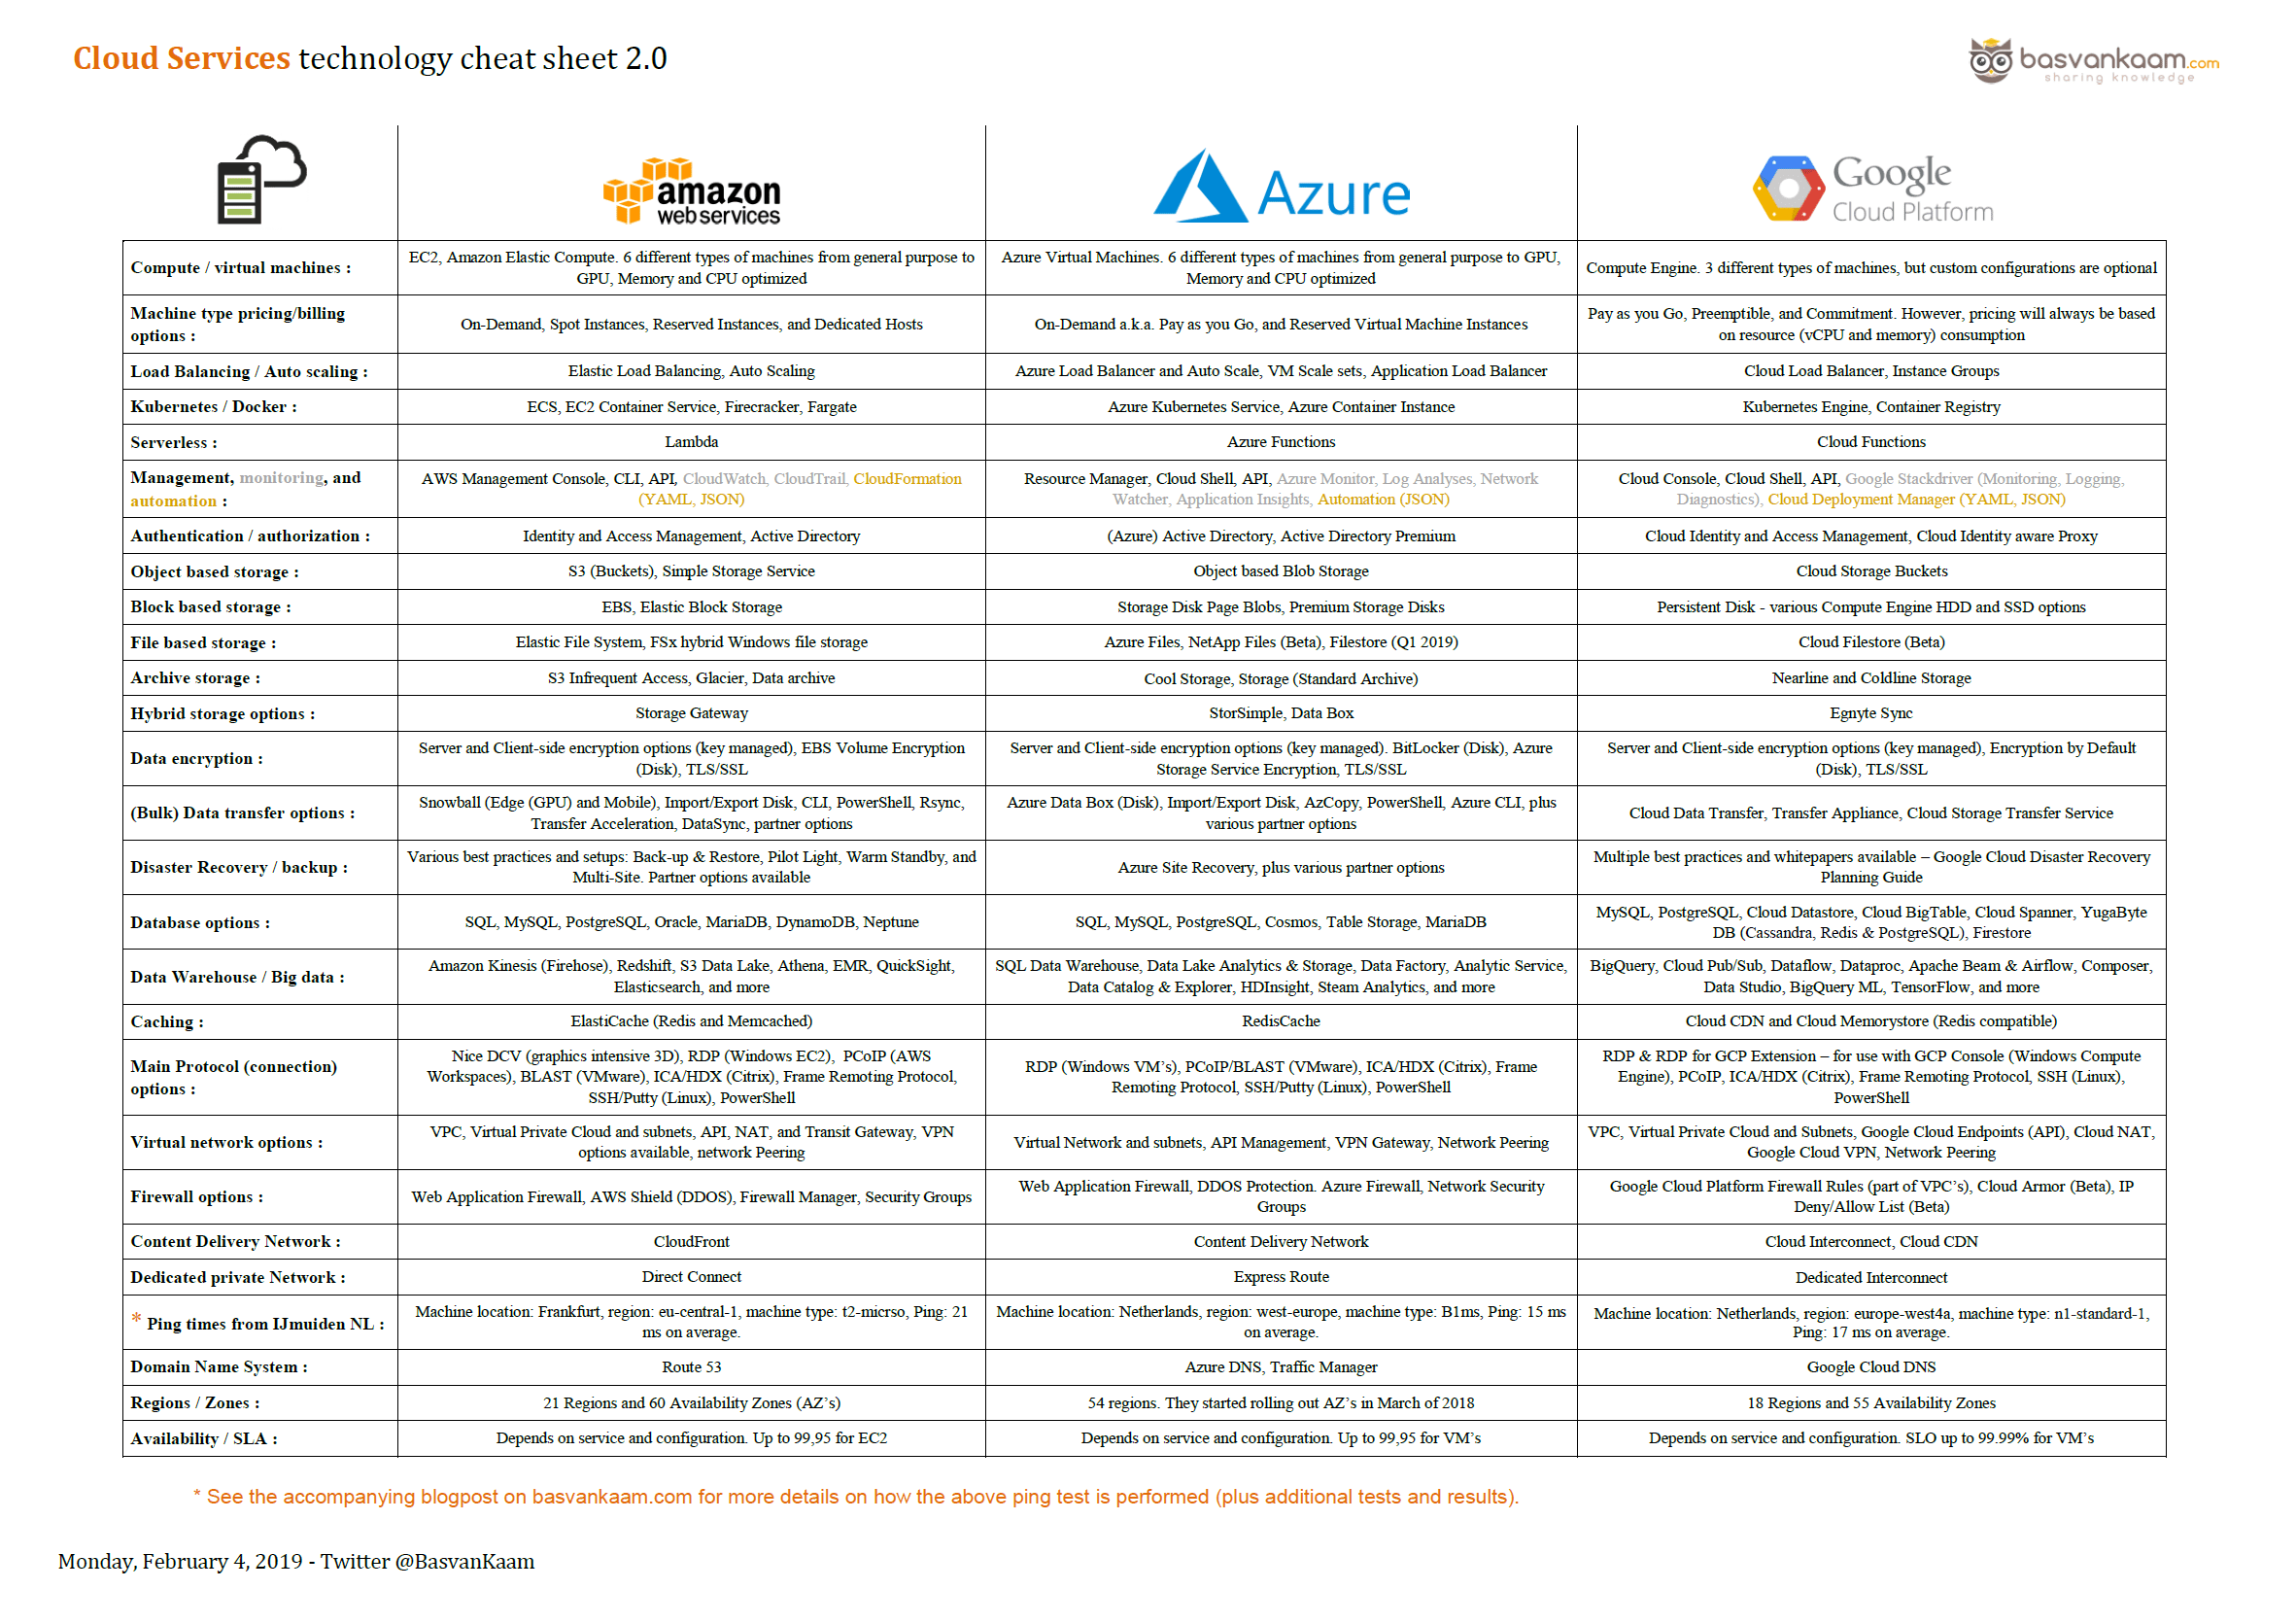 Version 2.0 of the Cloud Services Cheat Sheet is now live